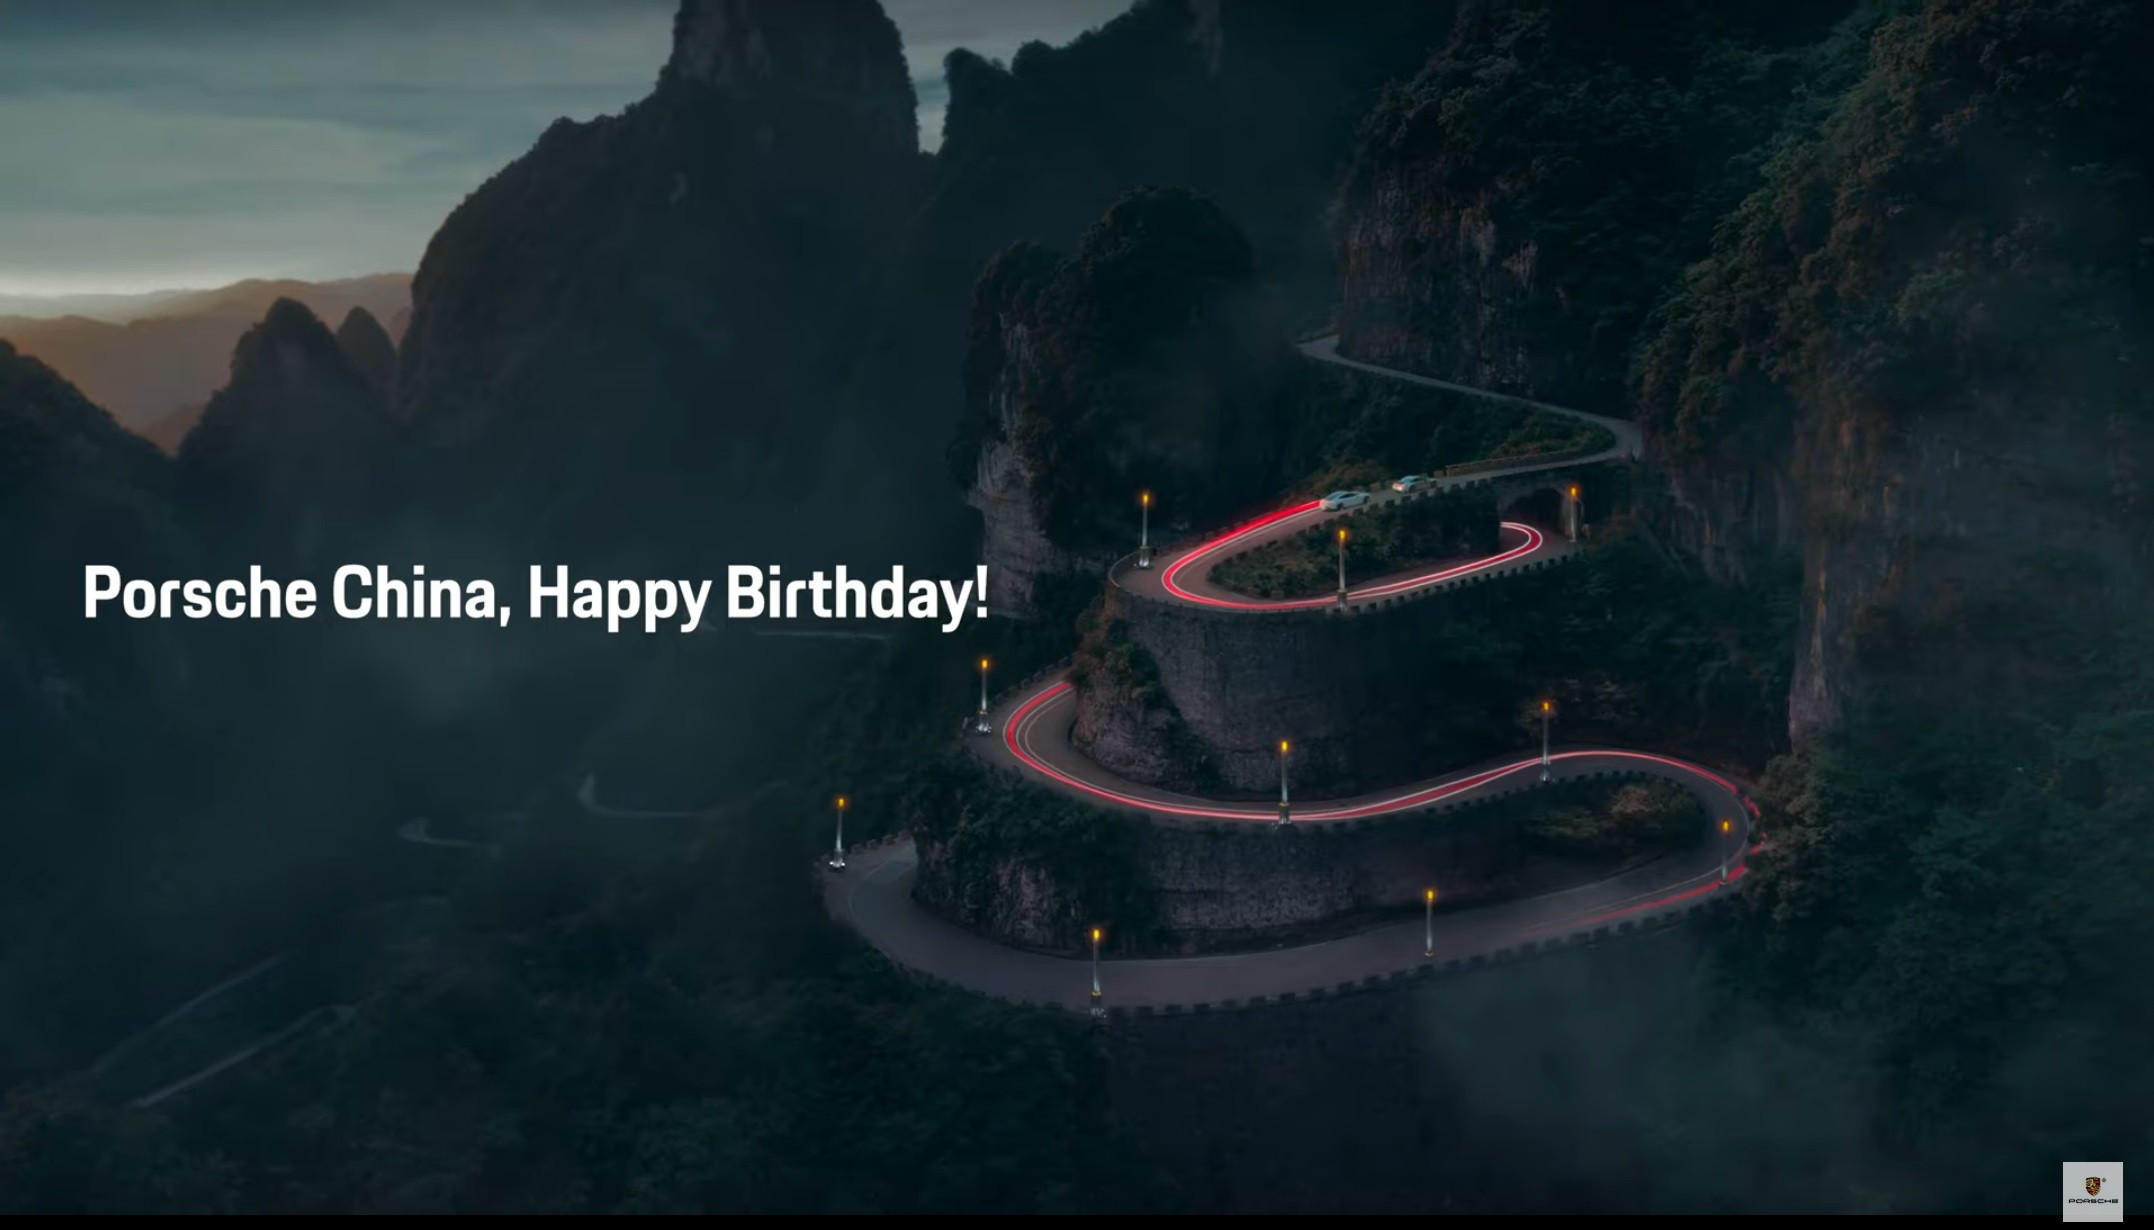 Porsche Celebrates 20 Years in China With Classy Yet Action-Filled Video